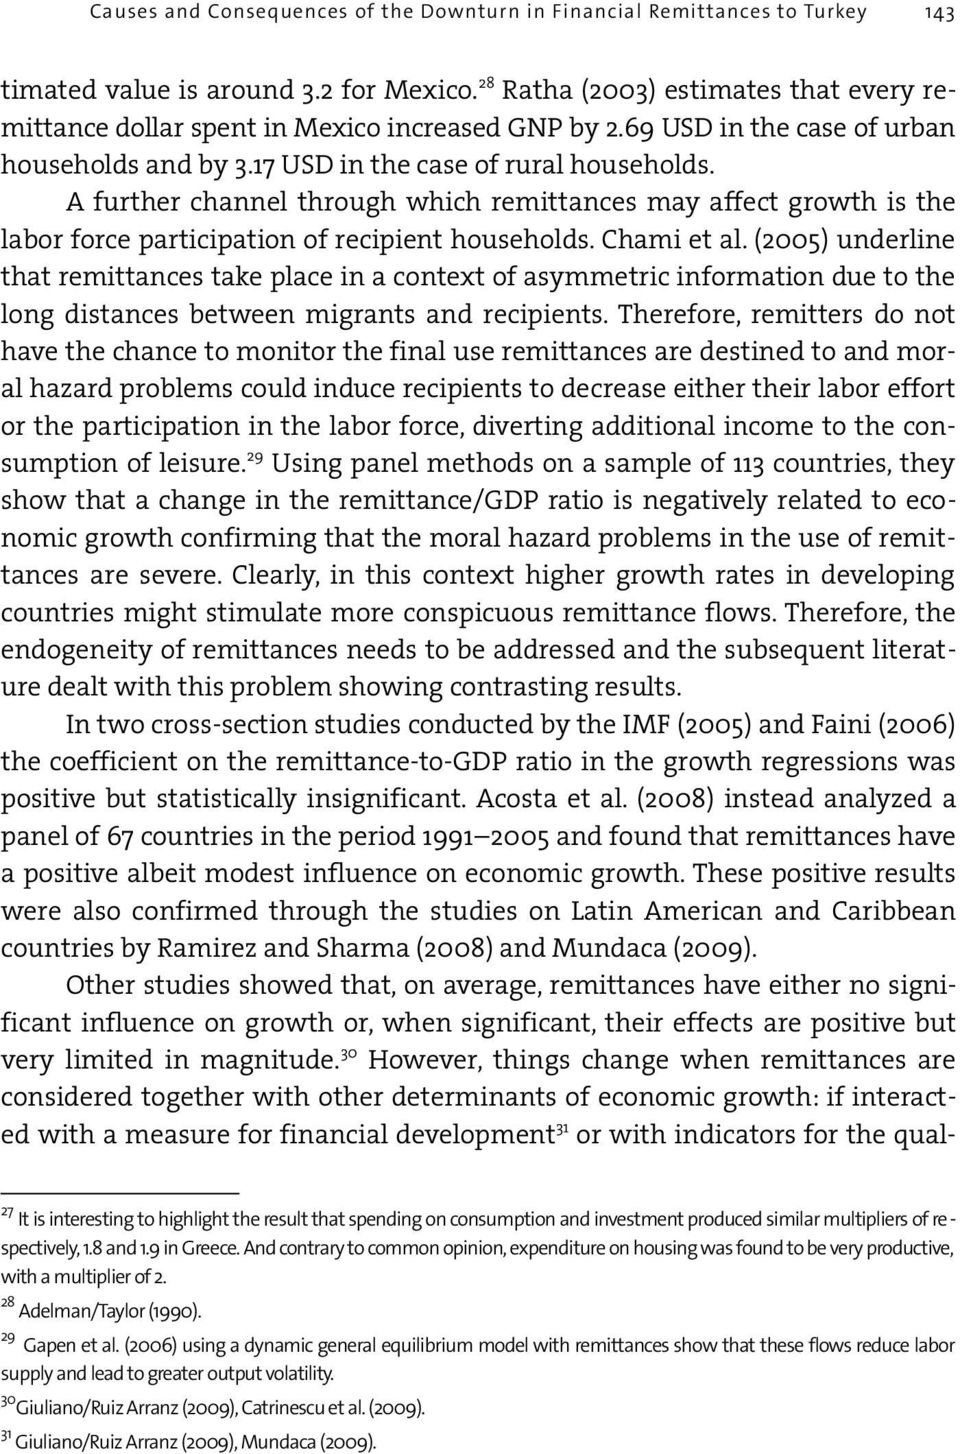 A further channel through which remittances may affect growth is the labor force participation of recipient households. Chami et al.